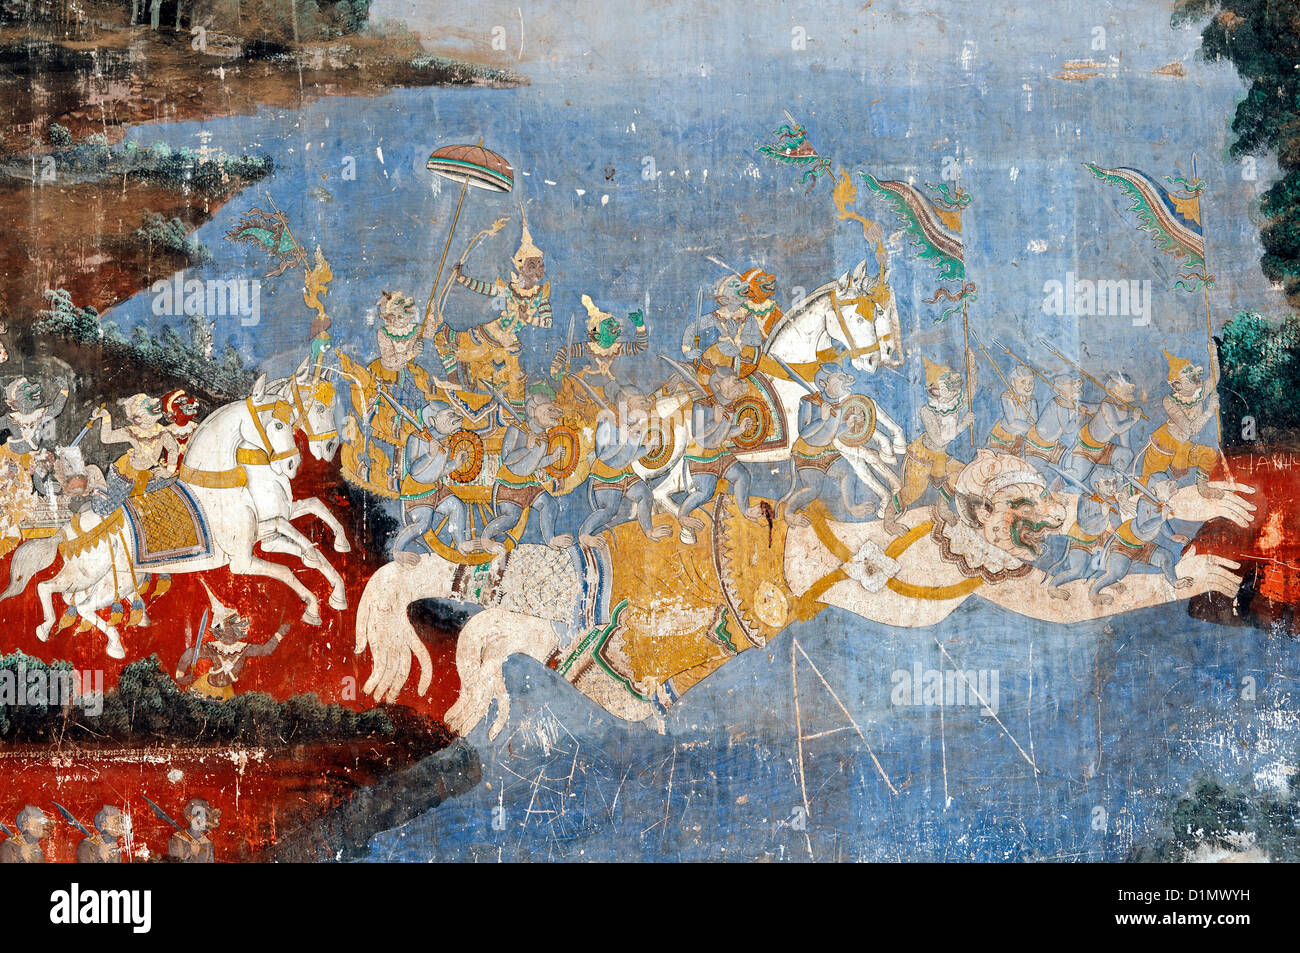 Murals of scenes from the Khmer (Reamker) version of the classic Indian epic Ramayana, Royal Palace, Phnom Penh, - Stock Image